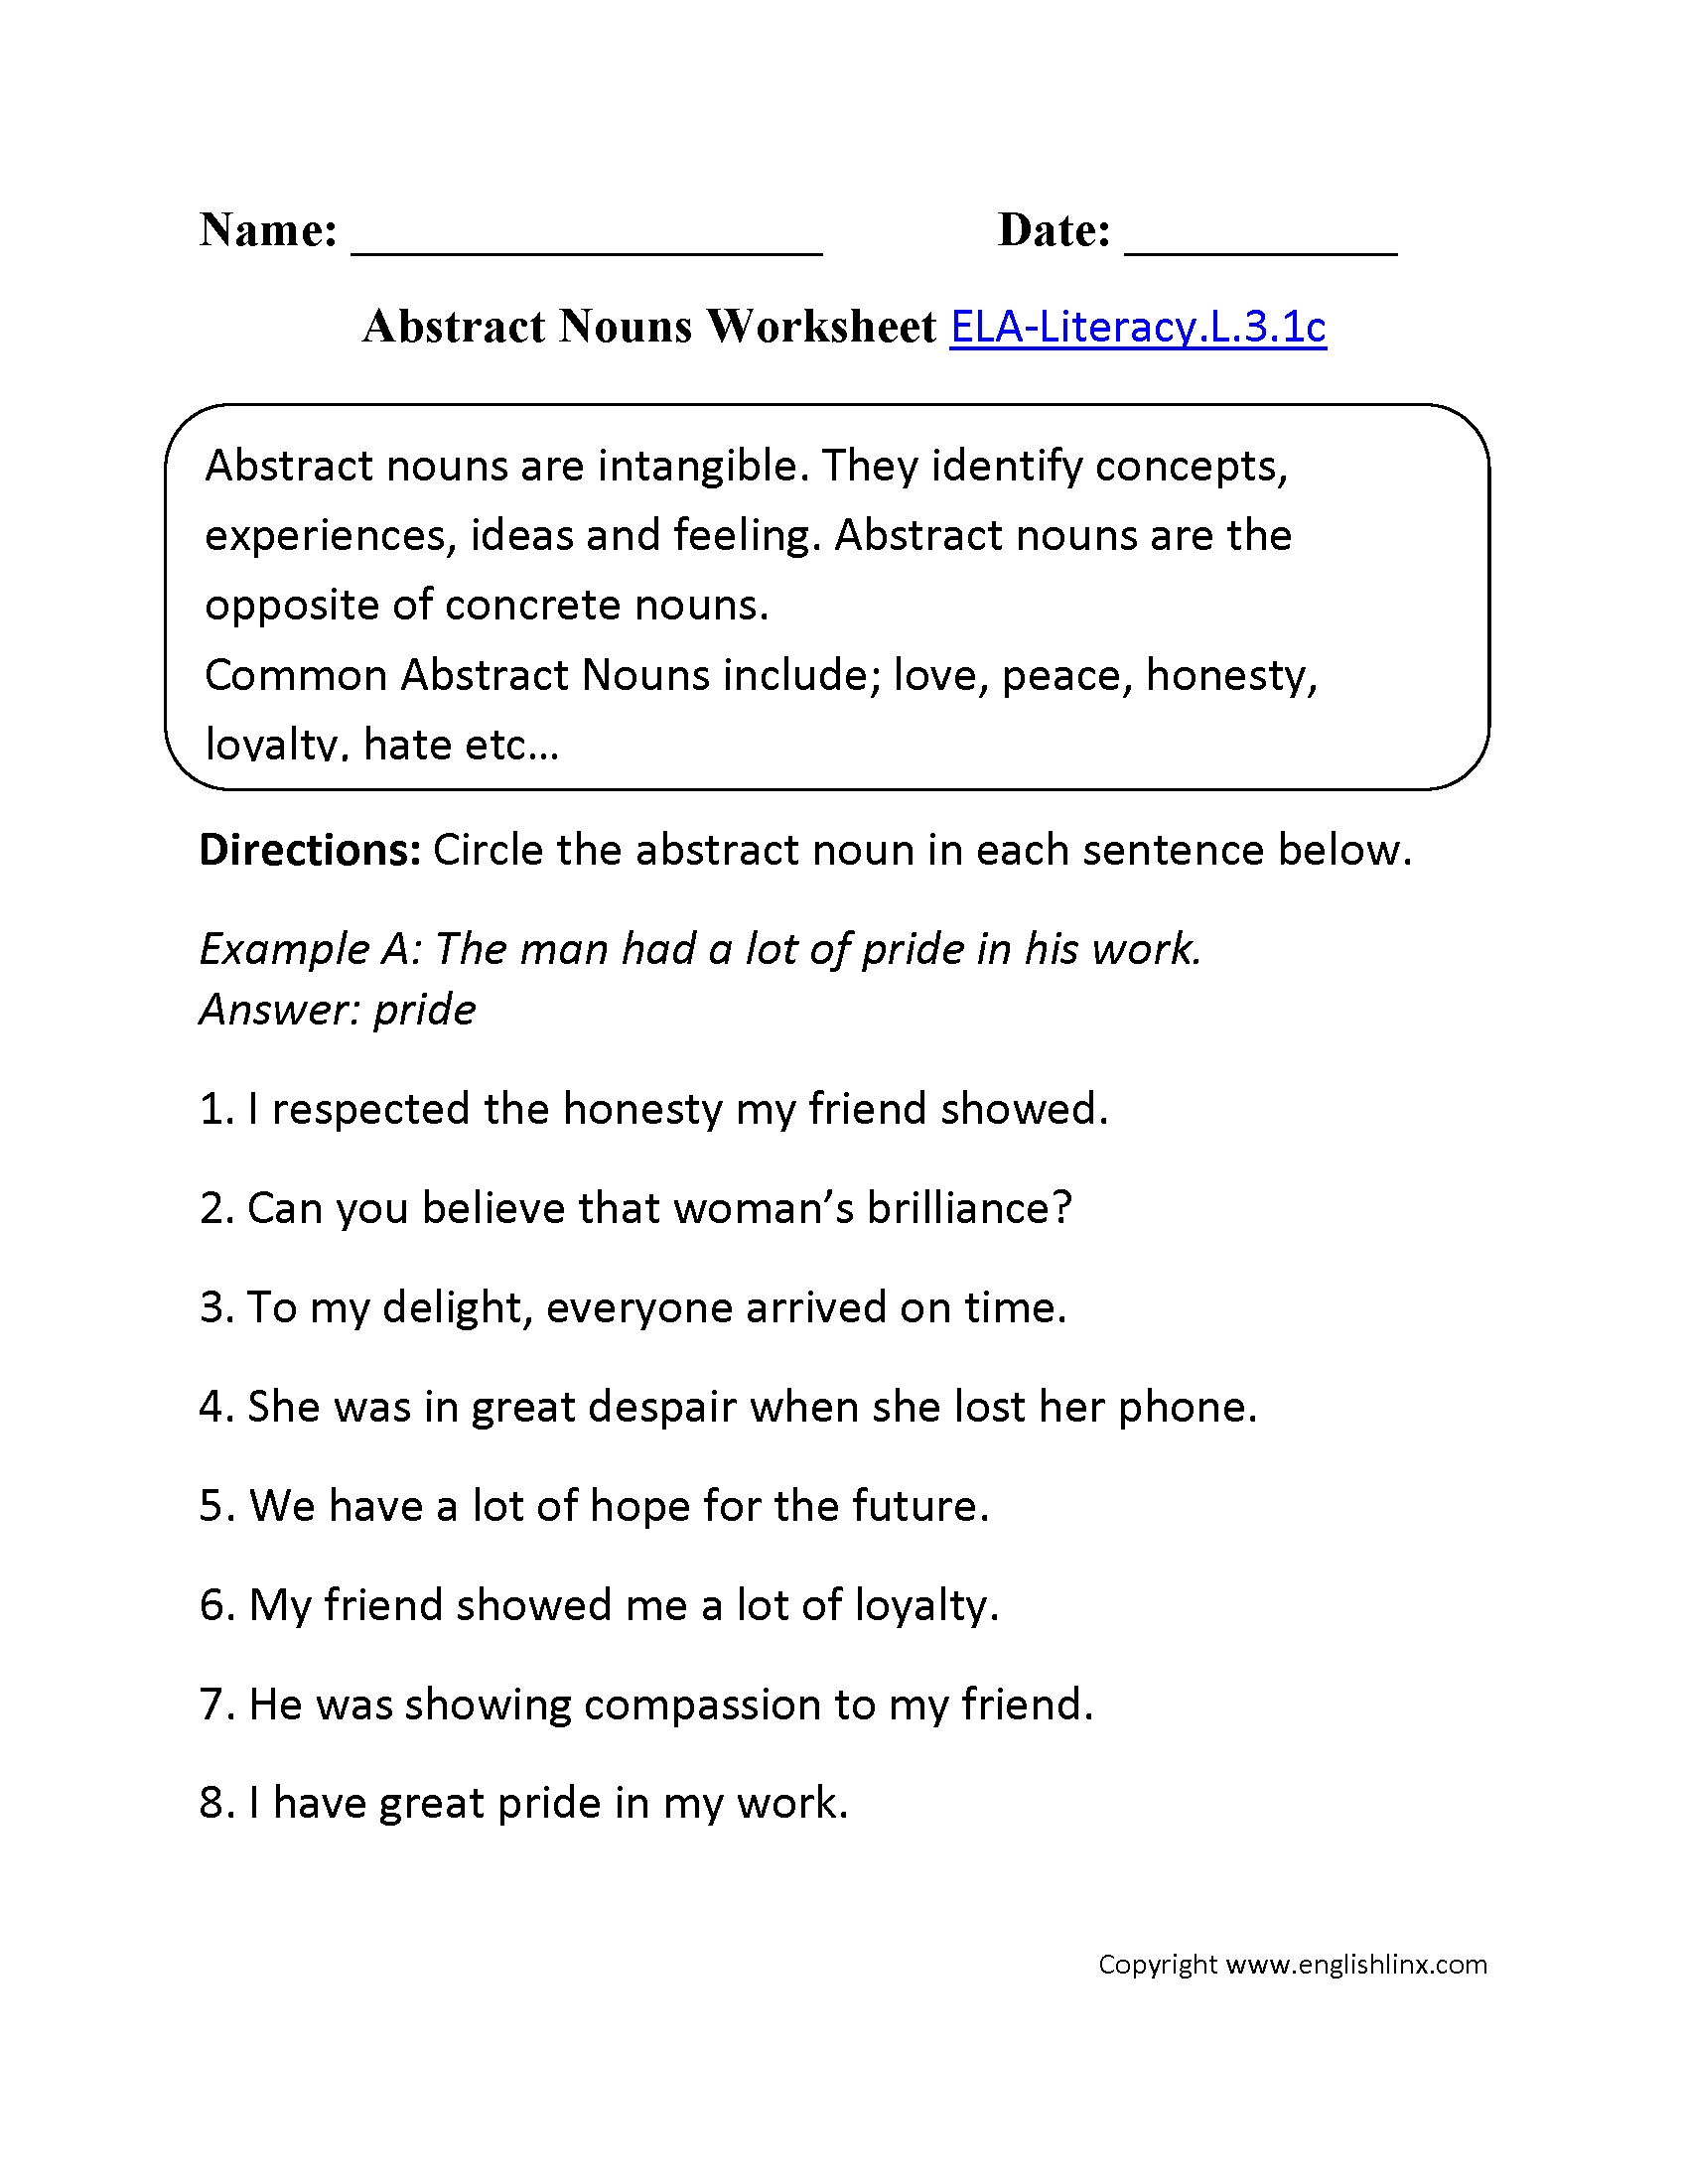 Worksheets Noun Worksheets 3rd Grade abstract nouns worksheet for grade 3 free worksheets library 3rd grade